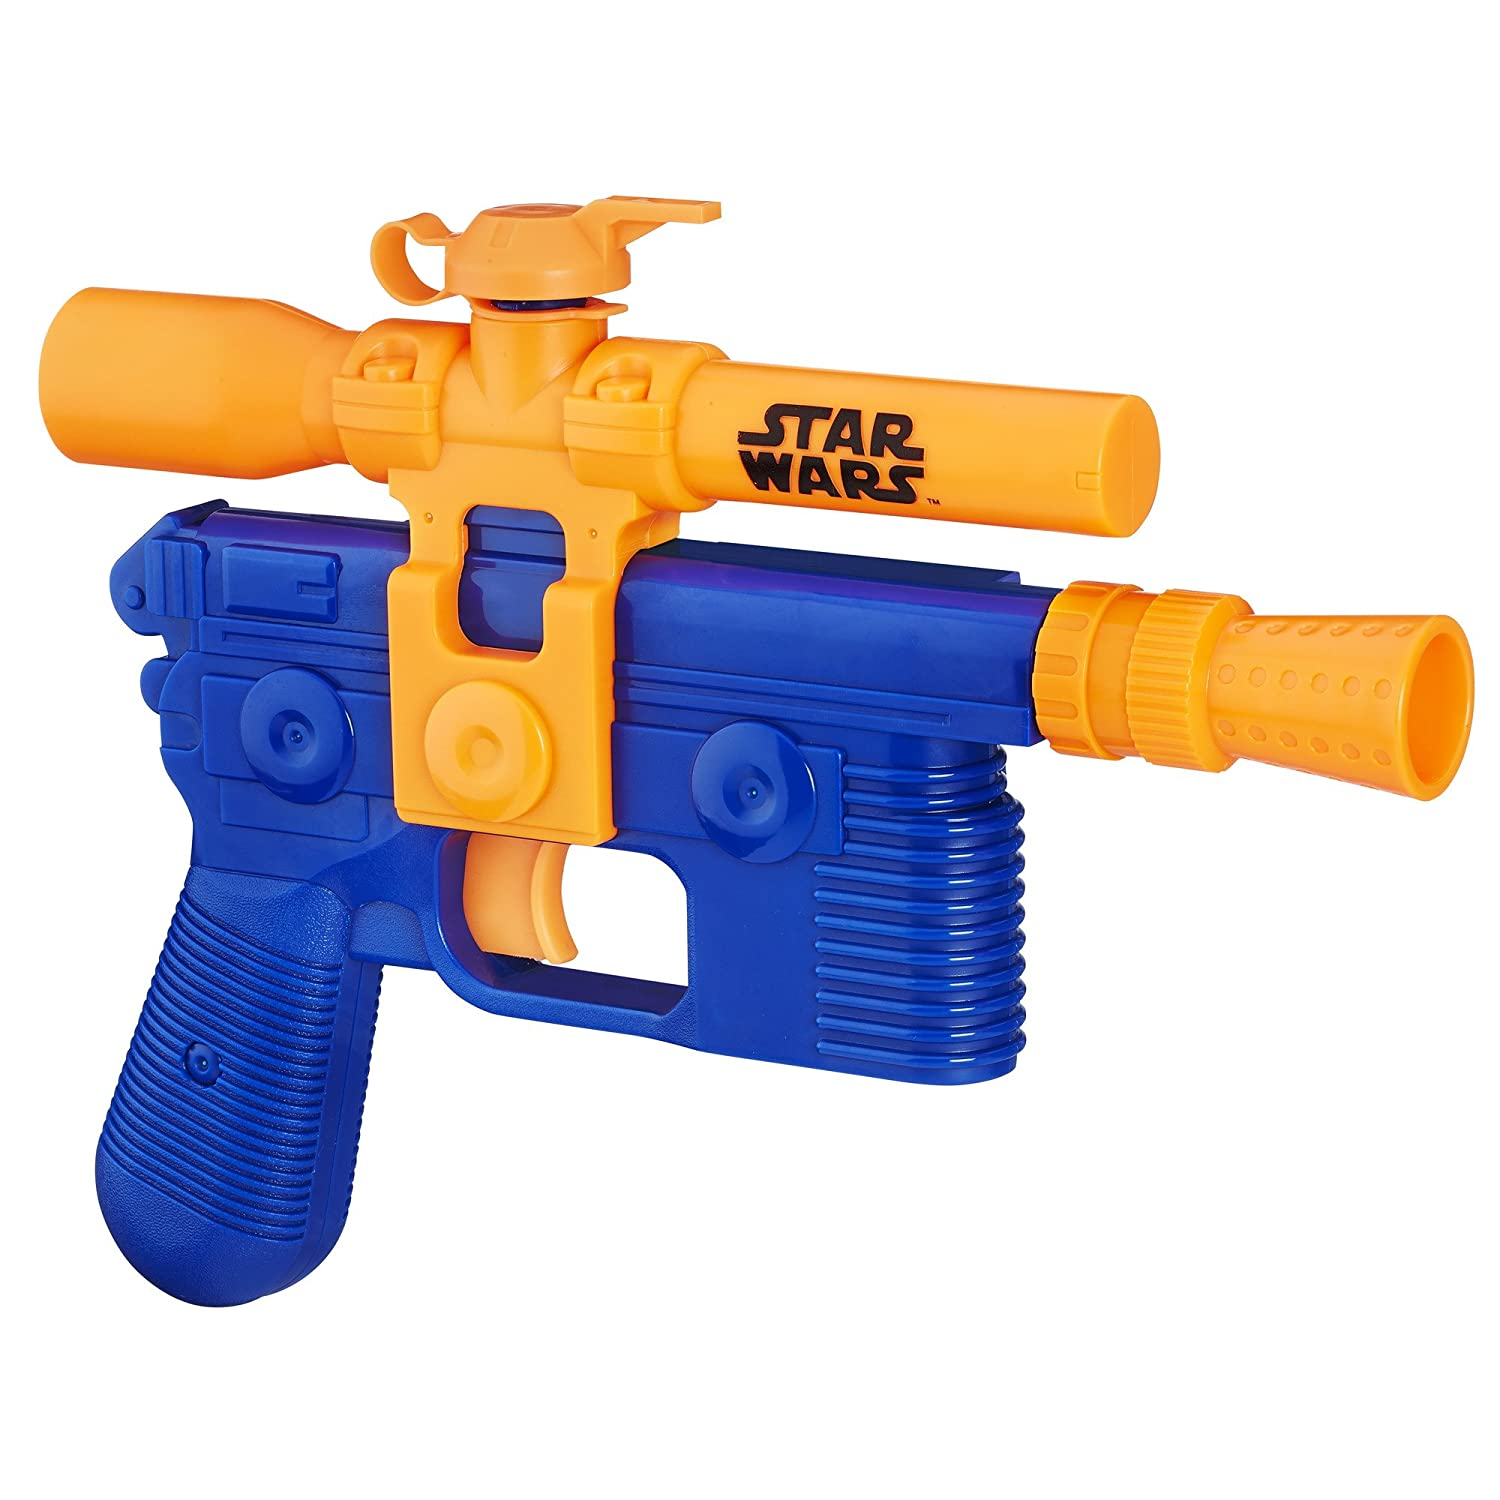 869a7ccf79a4a Amazon.com: Star Wars Episode VII Nerf Super Soaker Han Solo Blaster ...